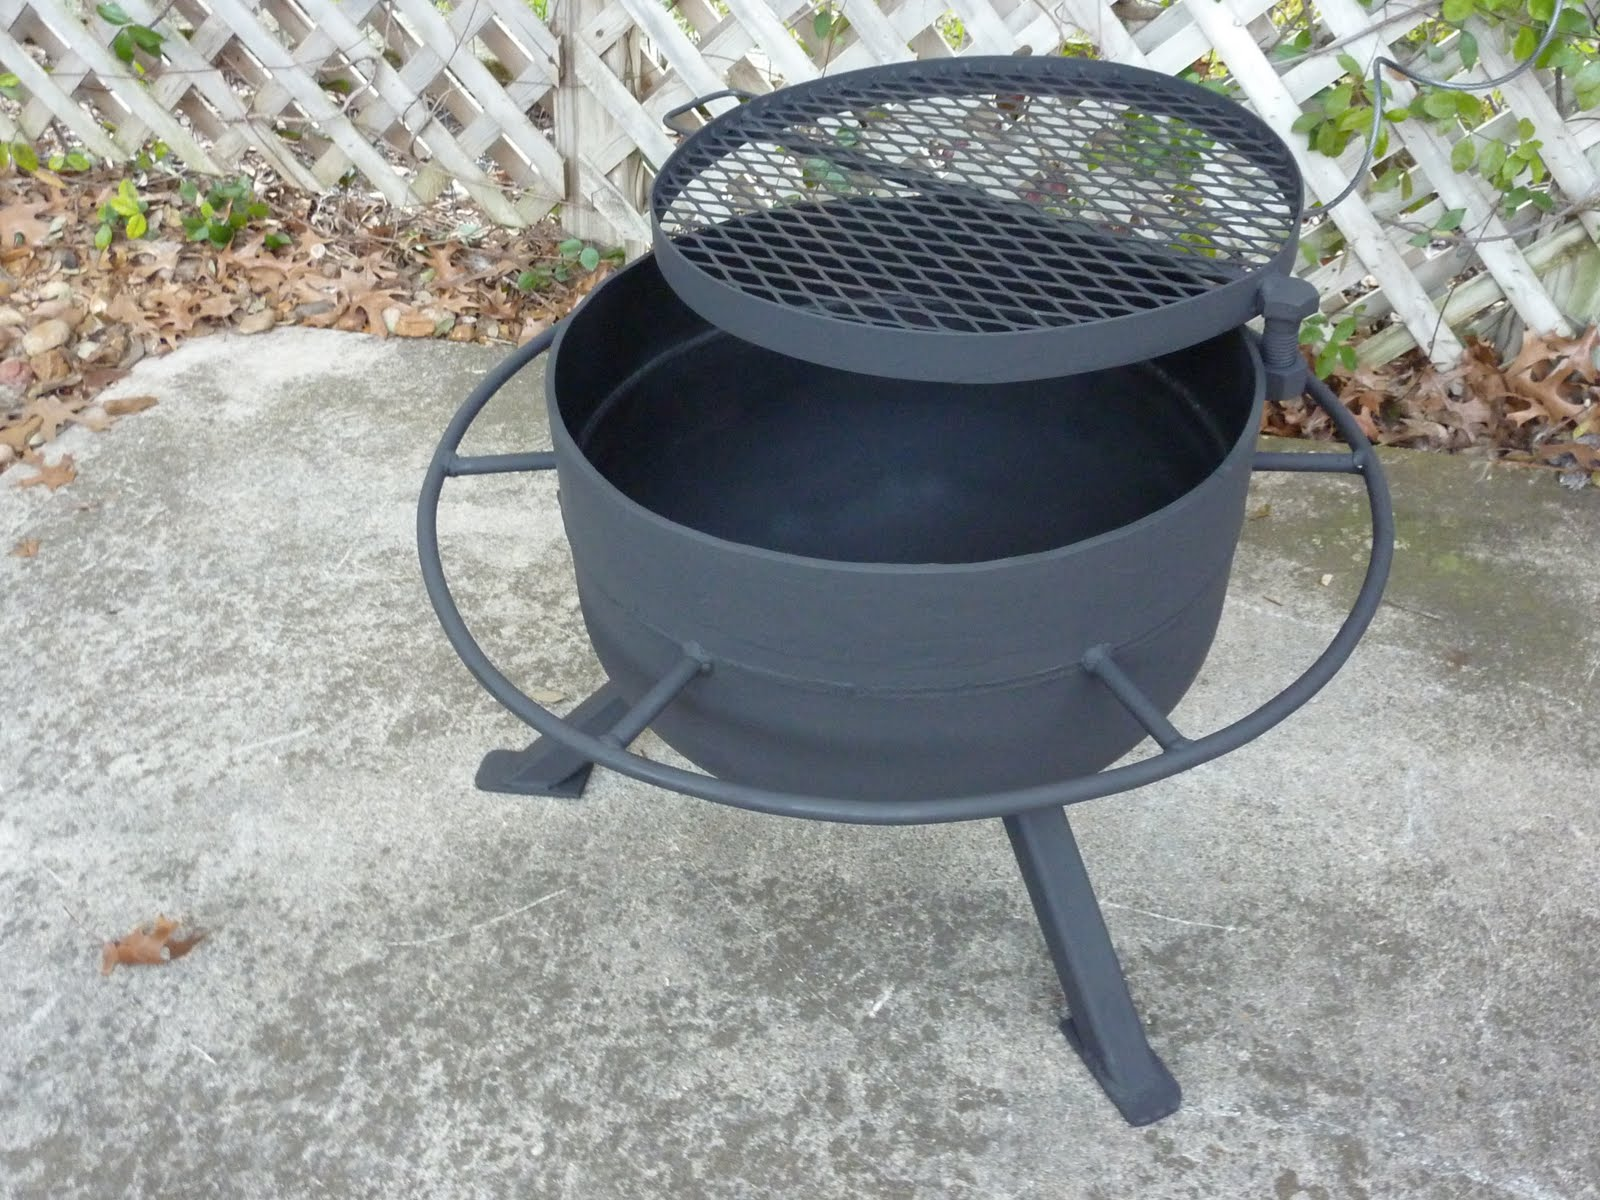 Jim Aderhold's Welding and Metalworking Hobby: Fire Pit ...